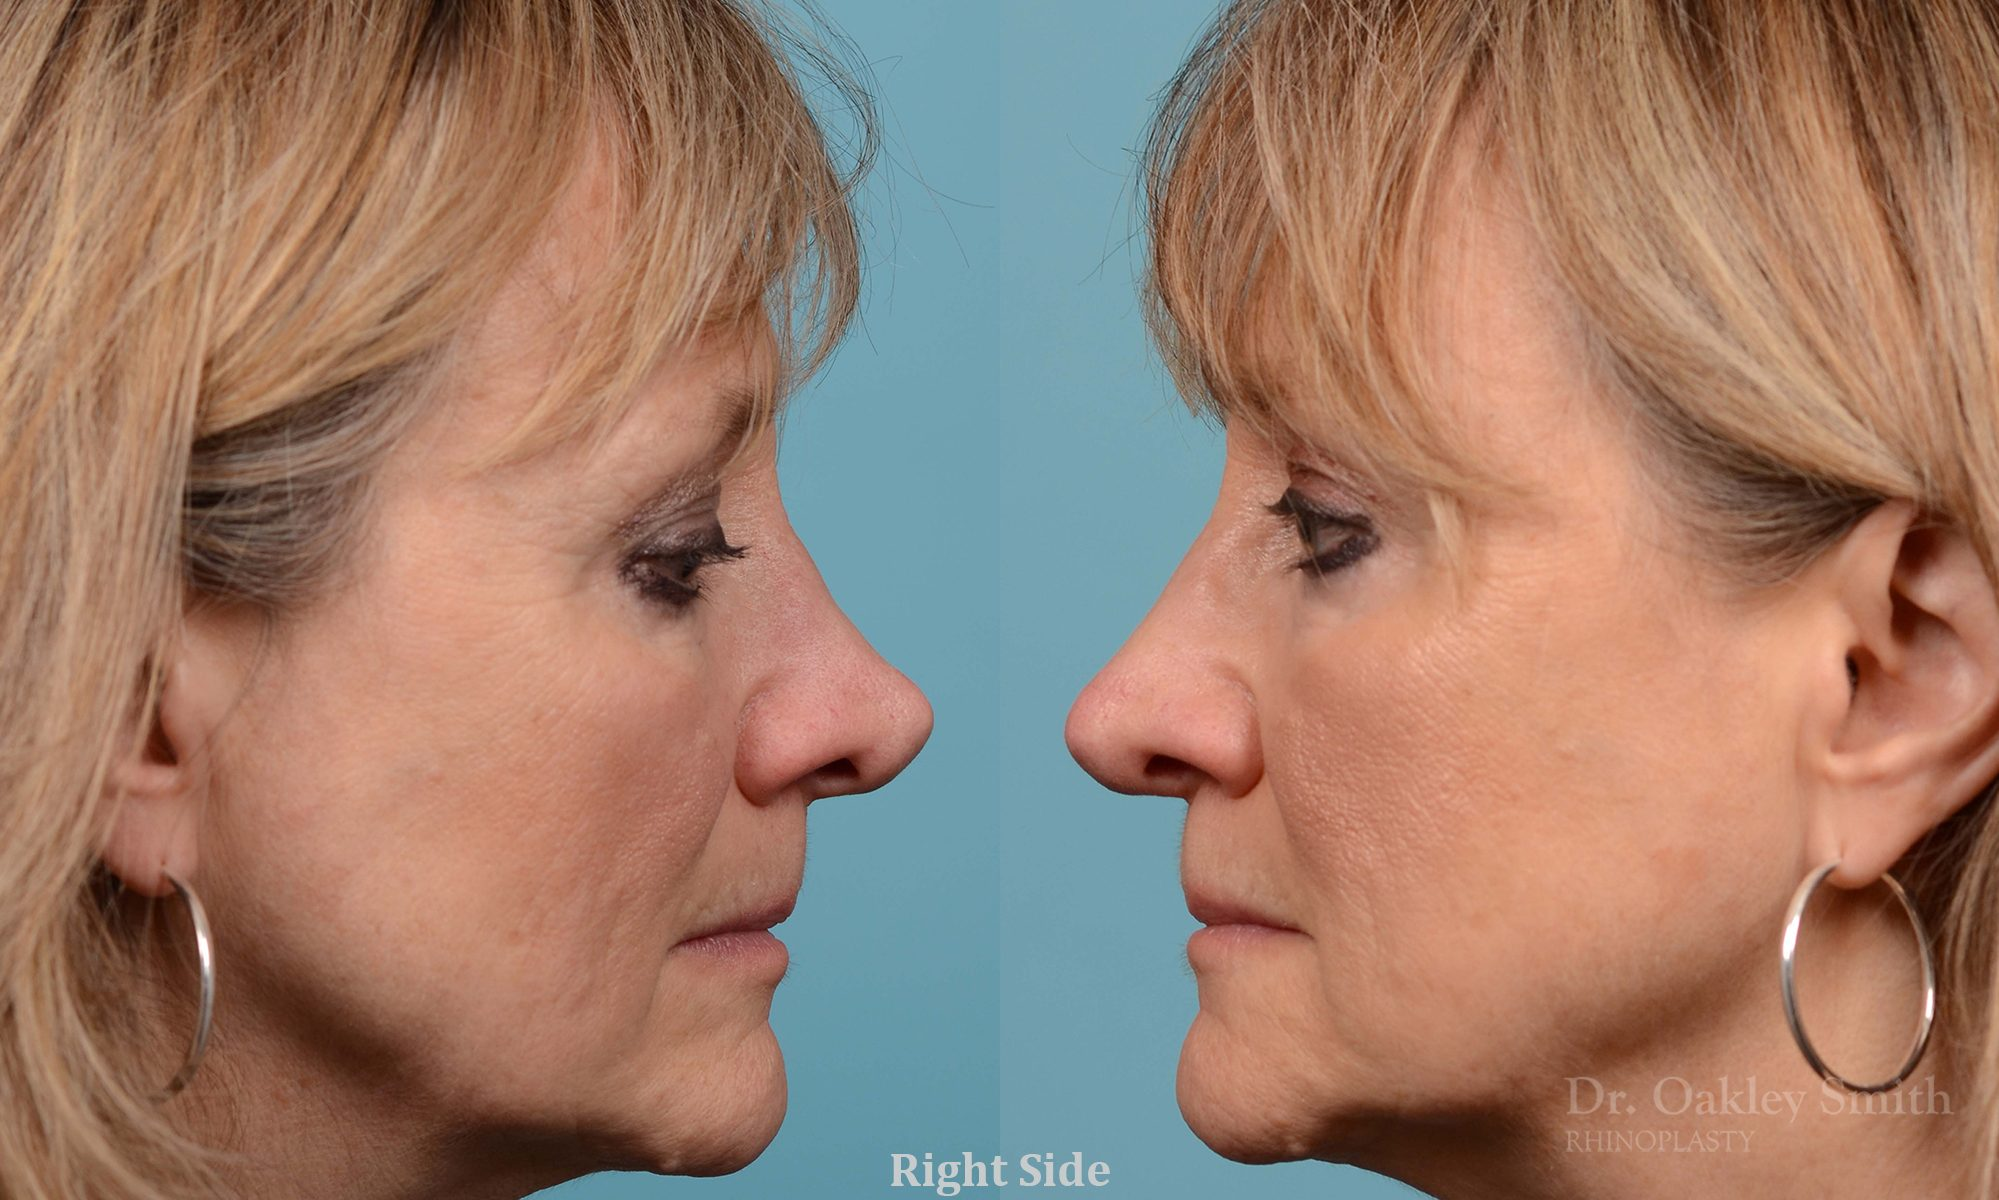 Rhinoplasty to smooth out her nose